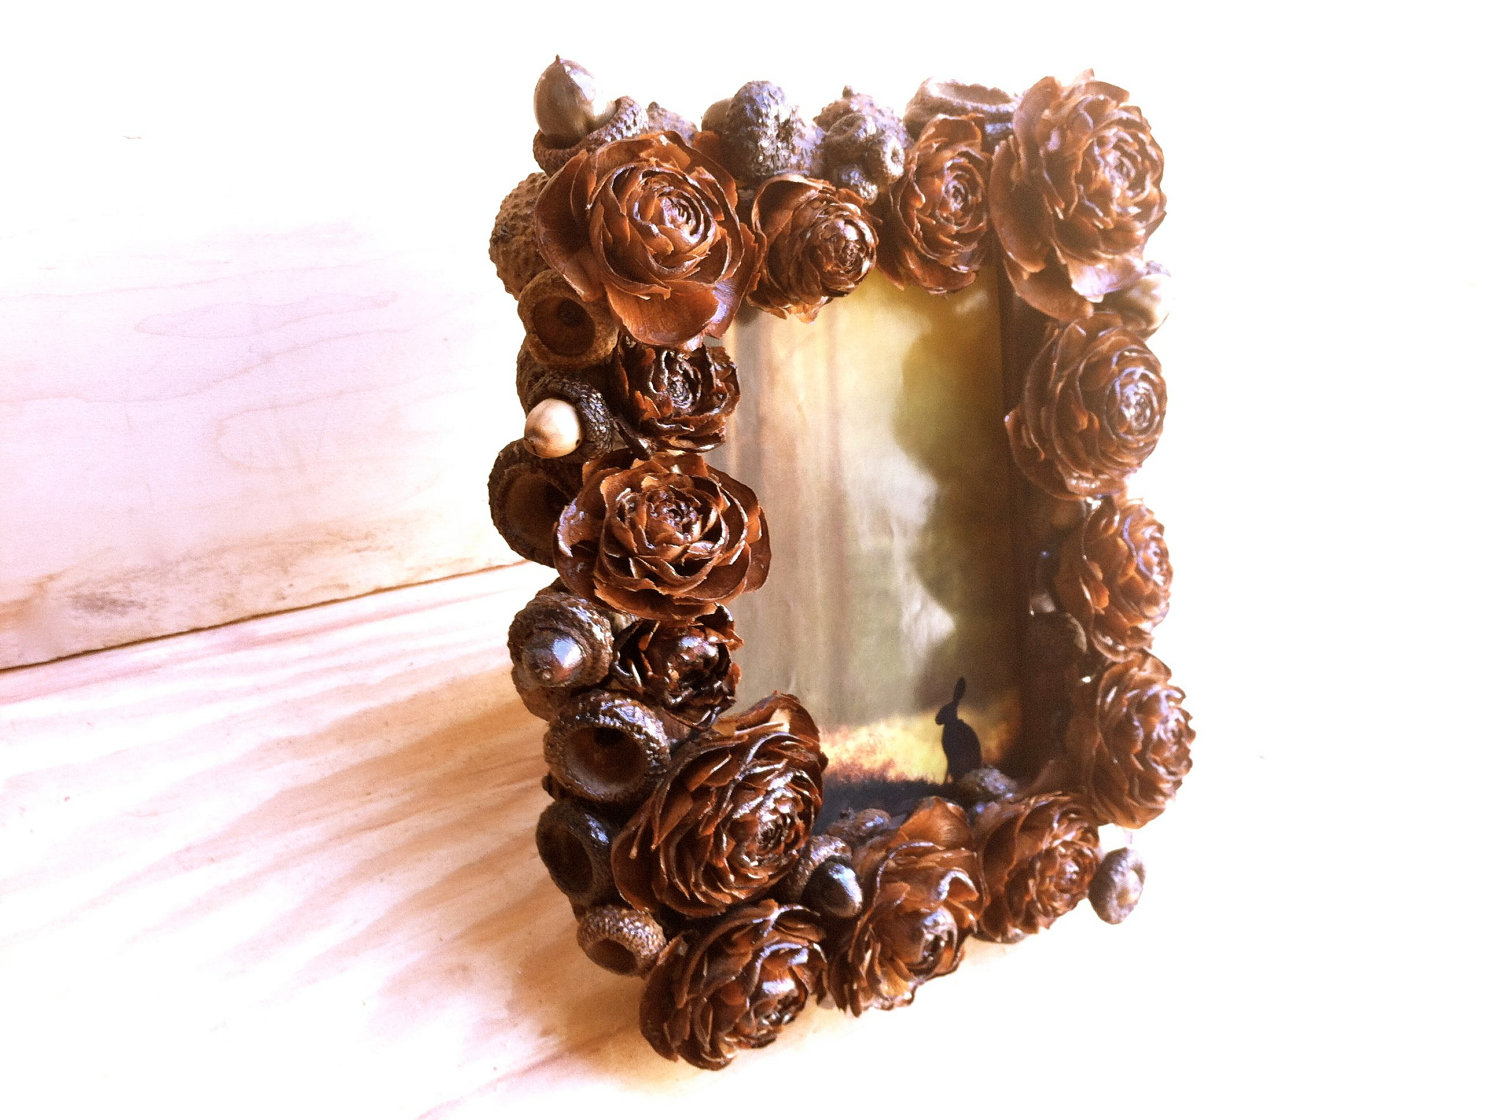 decorating-ideas-gorgeous-picture-of-accessories-for-wedding-table-design-and-decoration-using-unique-photo-frame-pine-cone-wedding-centerpiece-astonishing-accessories-for-wedding-table-decoration-wit